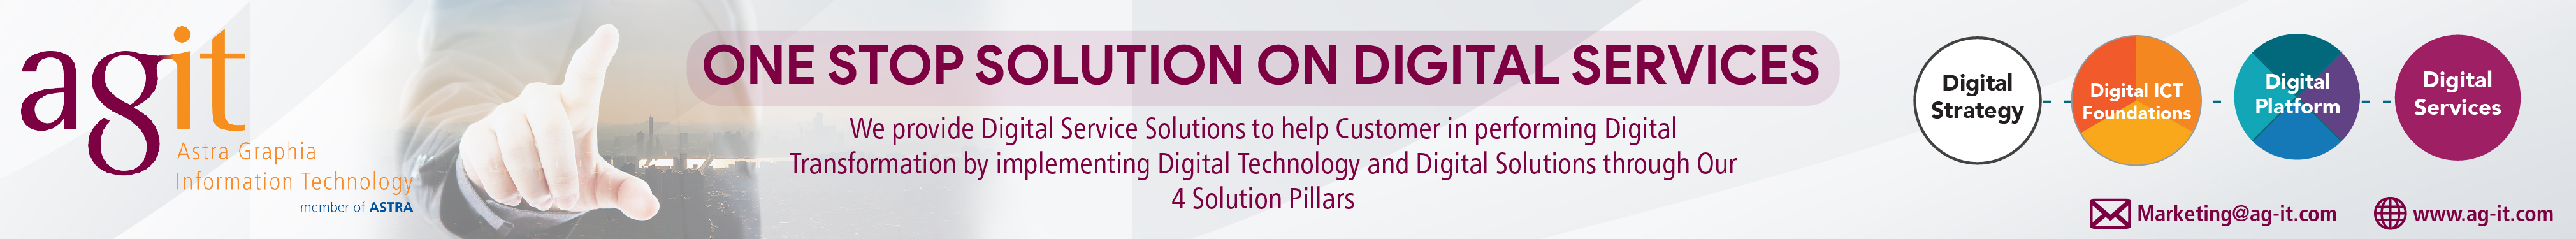 One Stop Solution On Digital Services